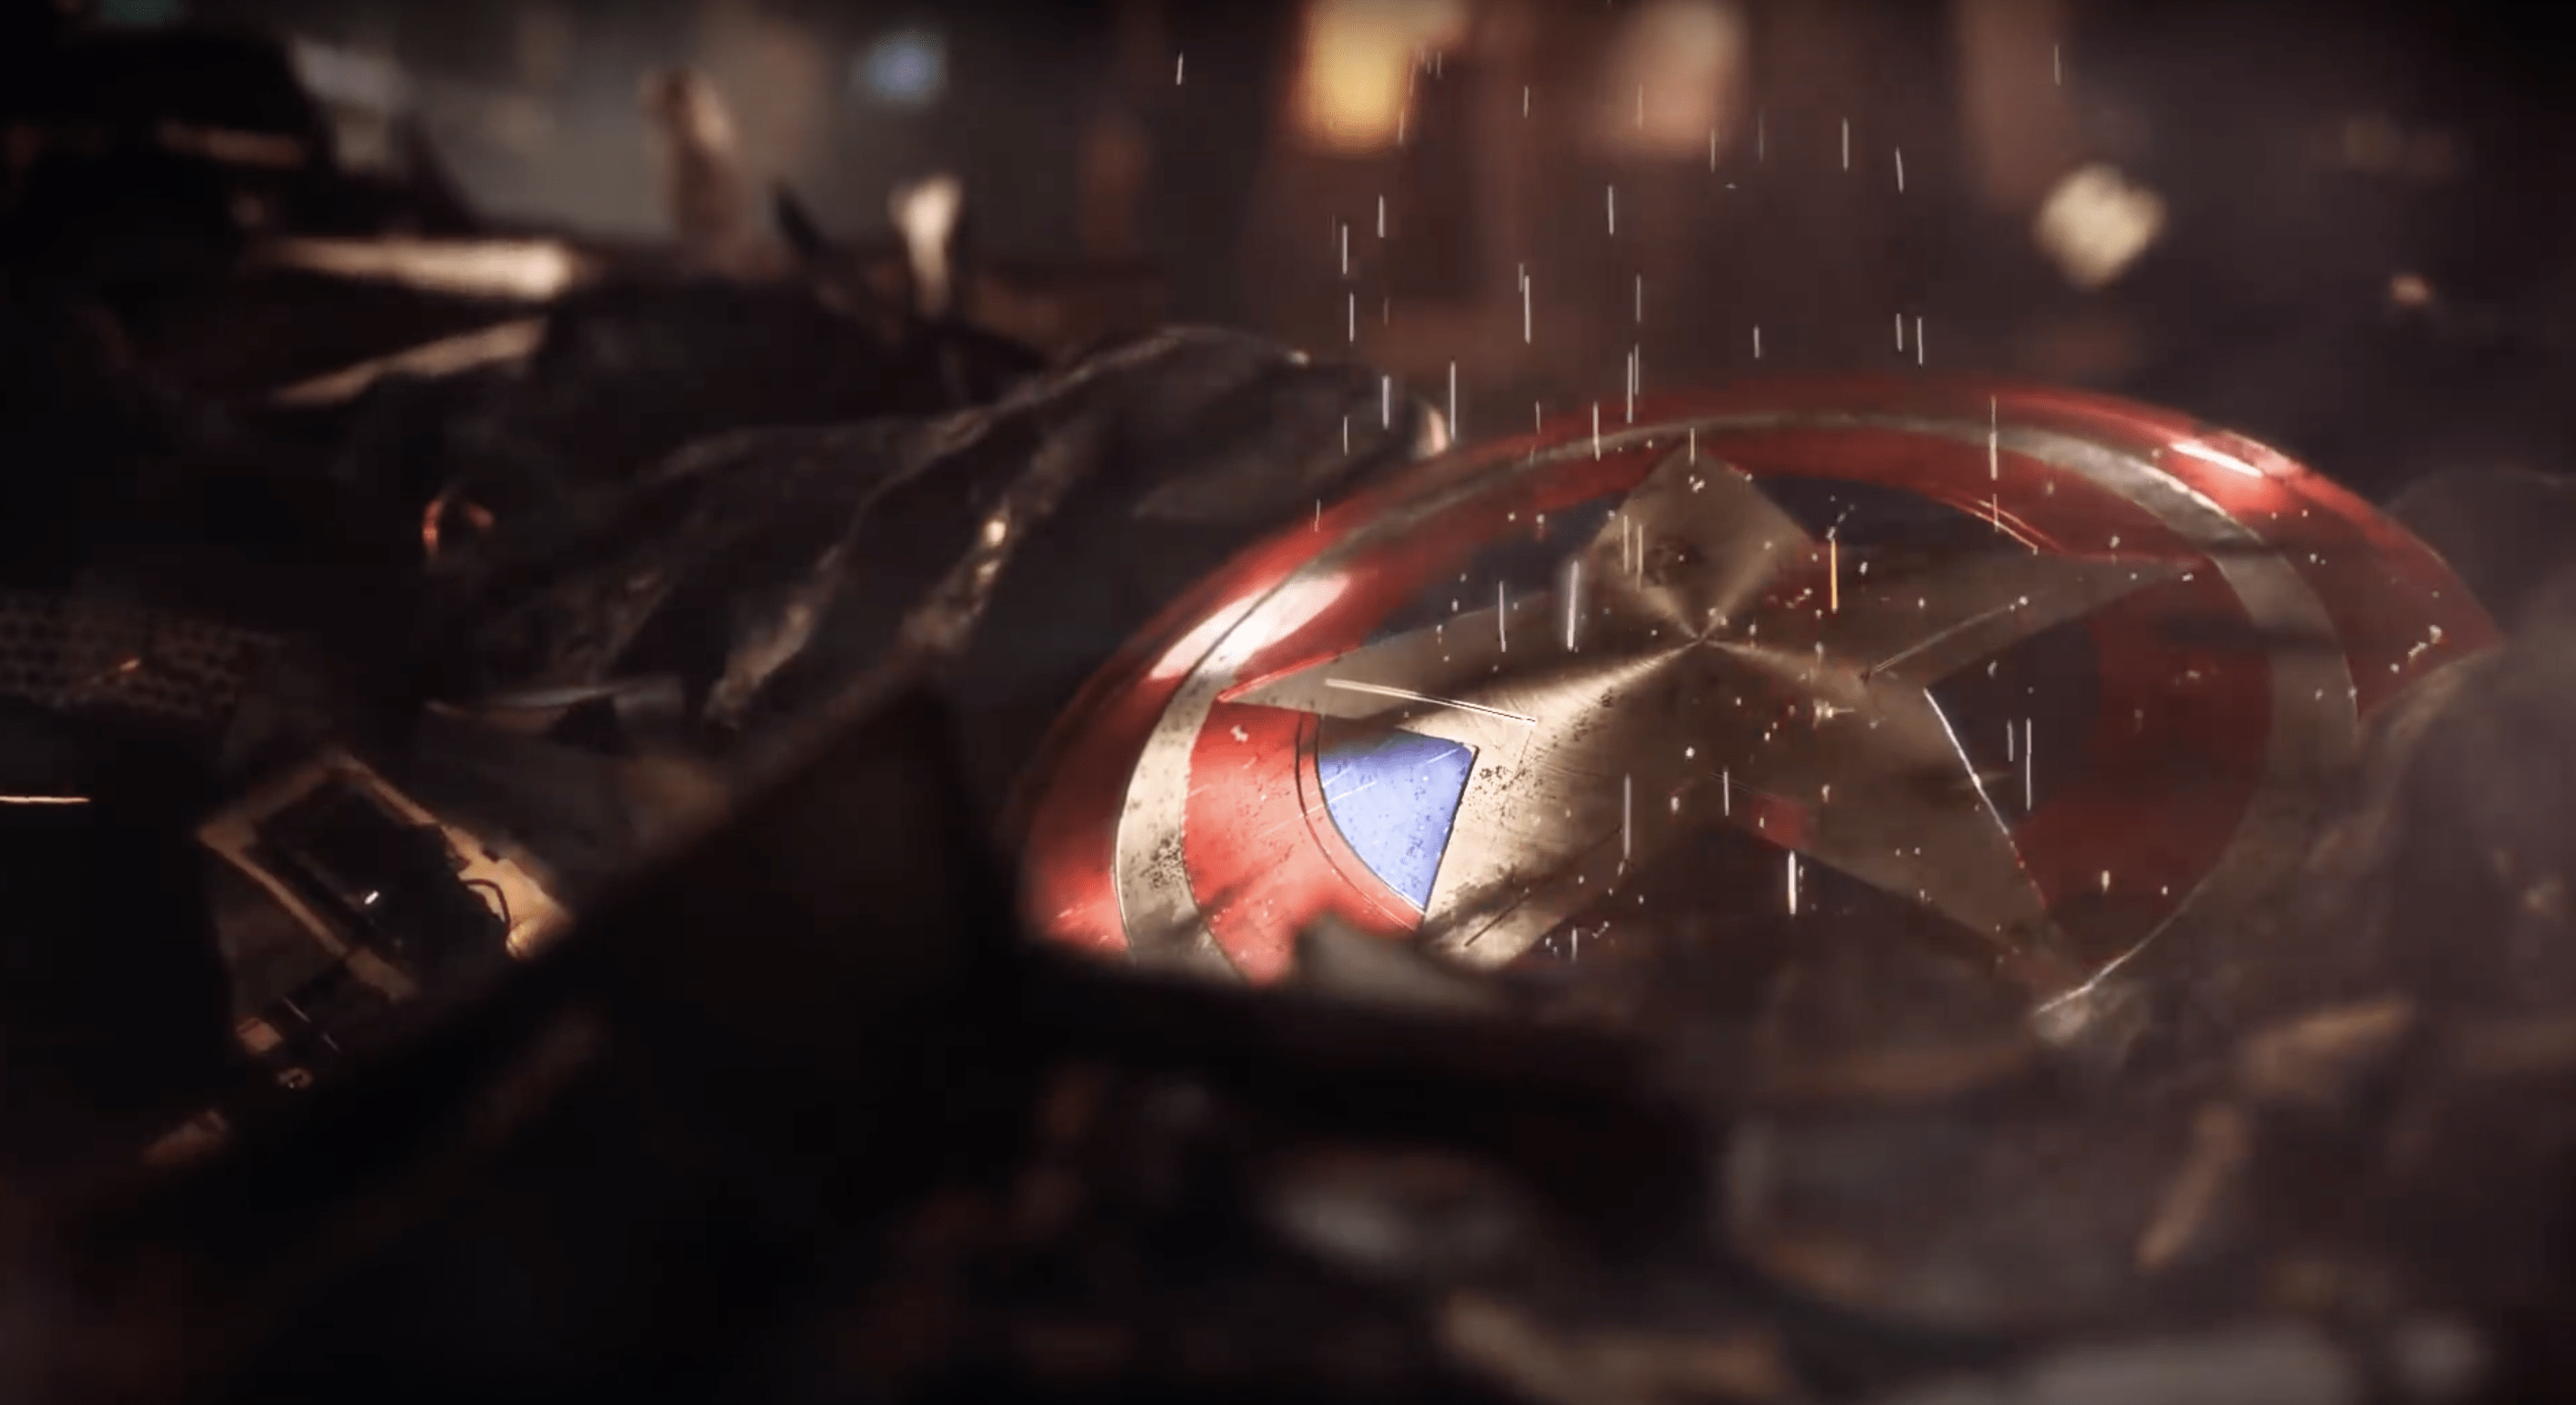 What to Expect from the AVENGERS Video Game by Square Enix